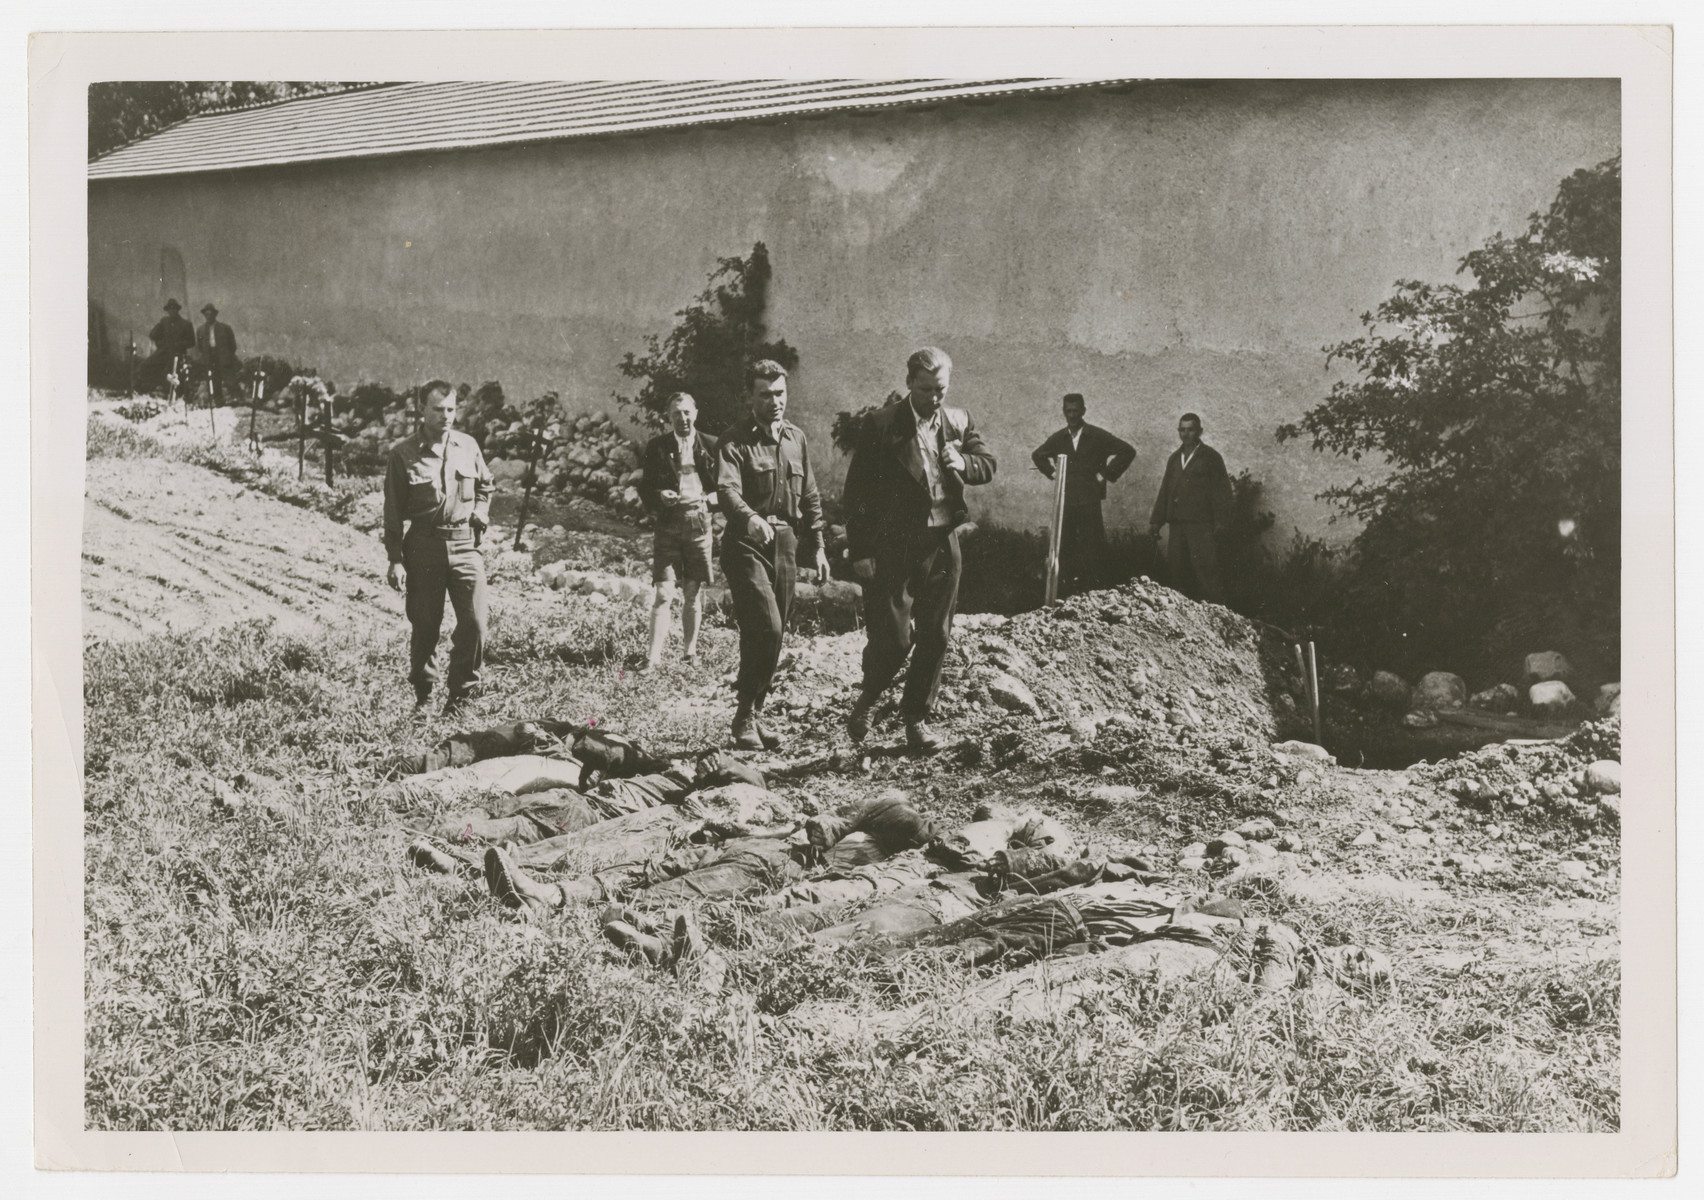 """An SS officer views corpses at Reichenau shortly after liberation.  The original Signal Corps caption reads, """"Untersturmfuehrer S.S. Martin Schott Lagerfuehrer of the Reichenau Concentration Camp looks at the bodies of eight Polish workers who had been hung at his camp."""""""